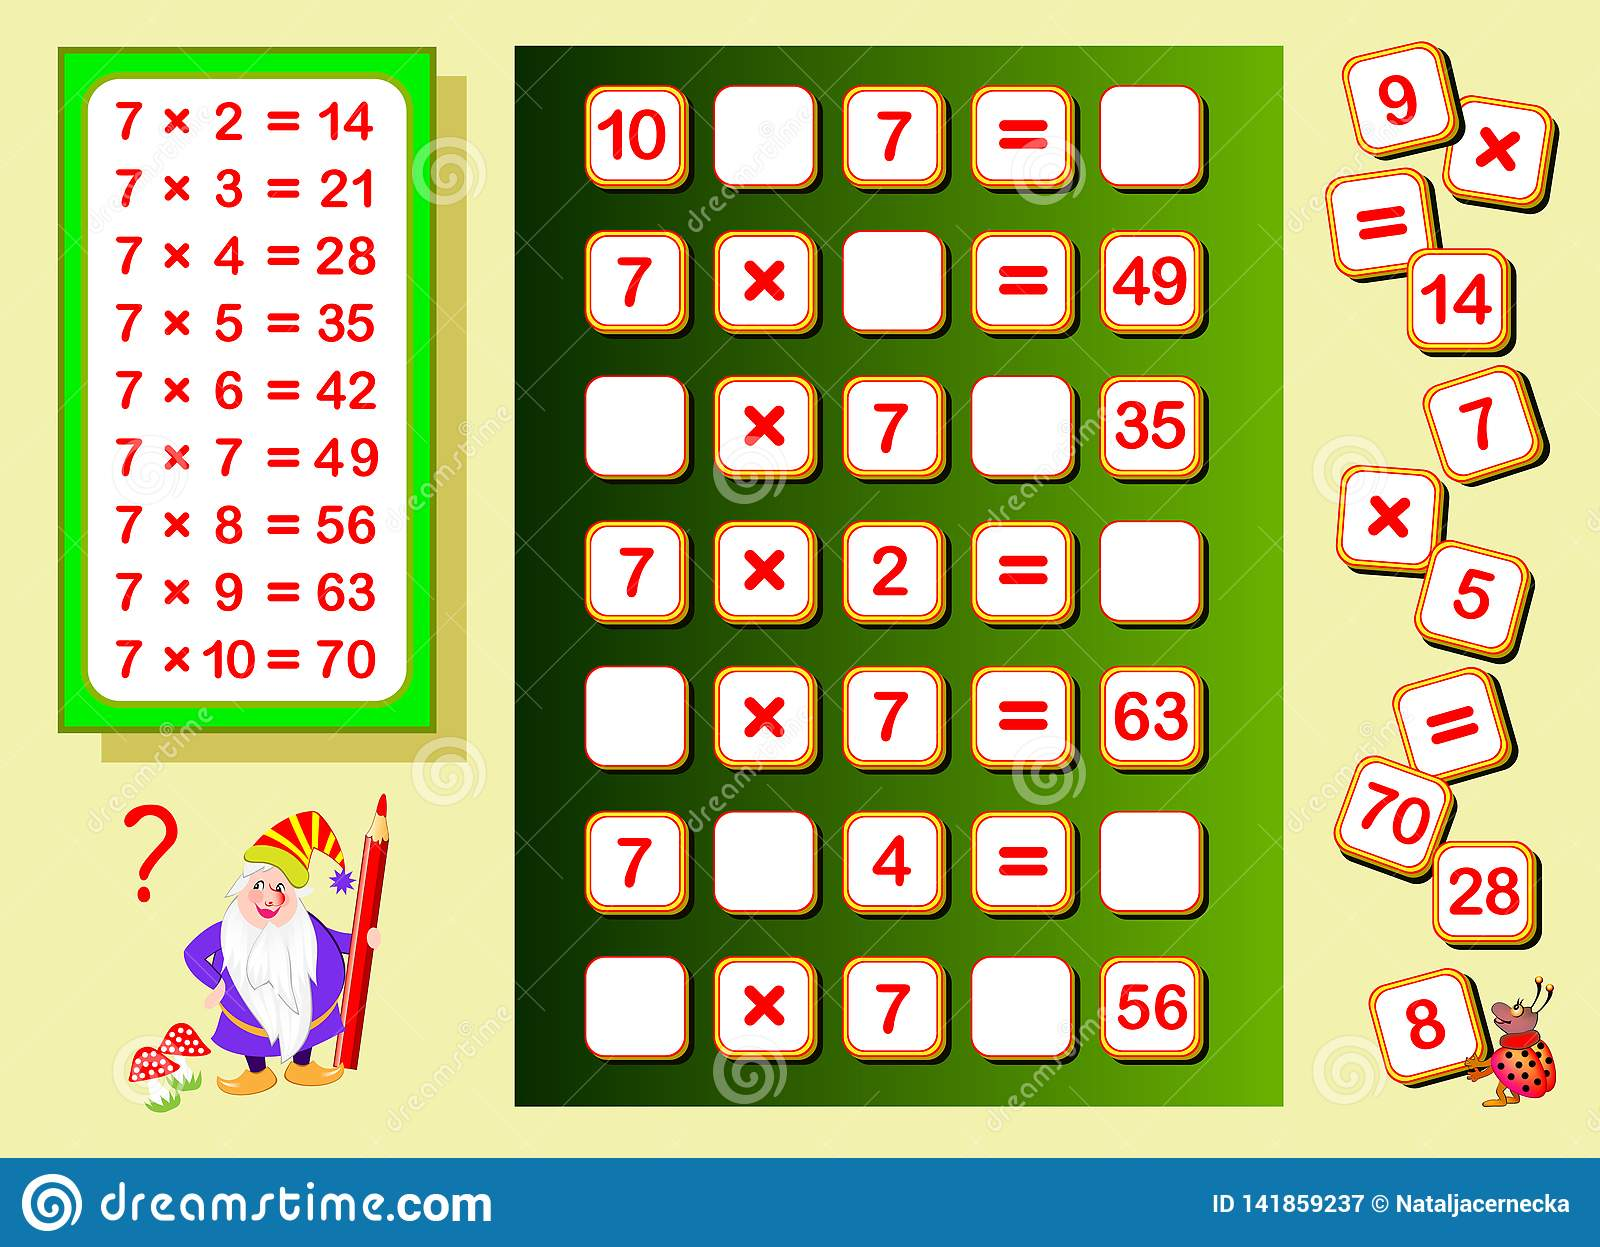 Multiplication Table By 7 For Kids Find Places For